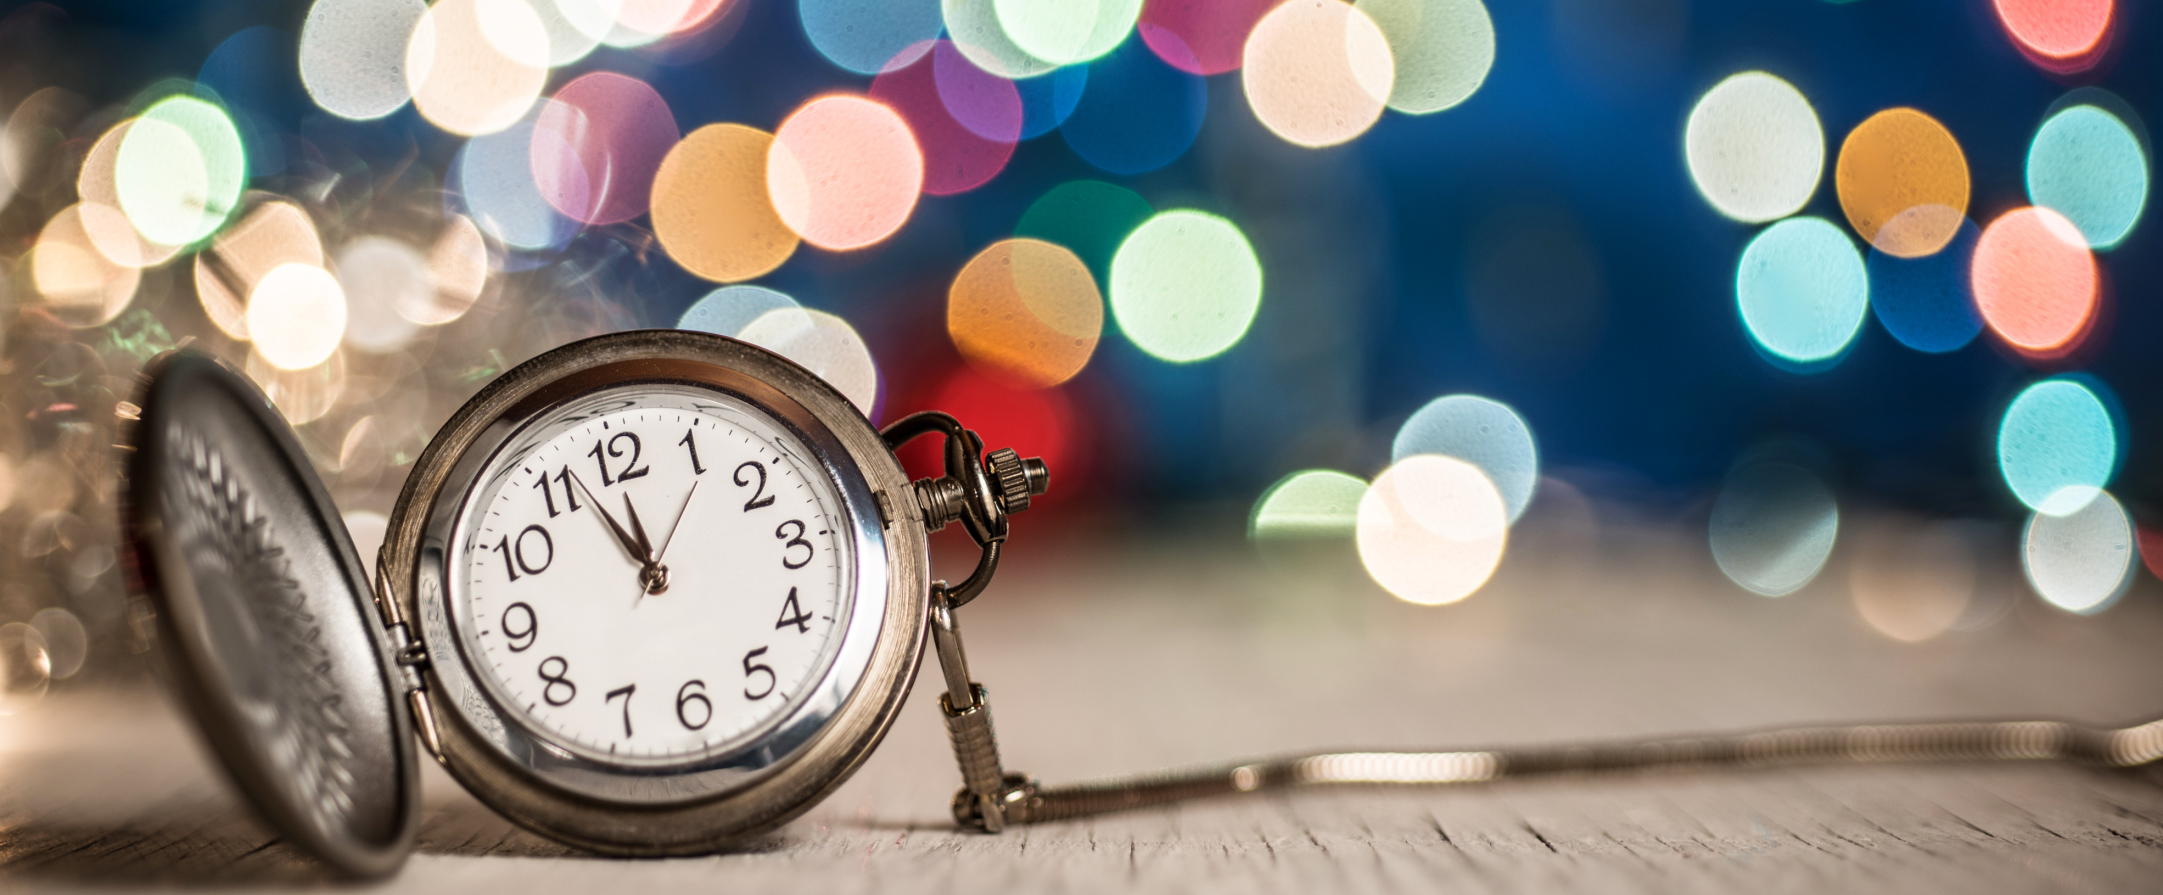 9 Data-Backed Tips for Keeping Your New Year's Resolutions